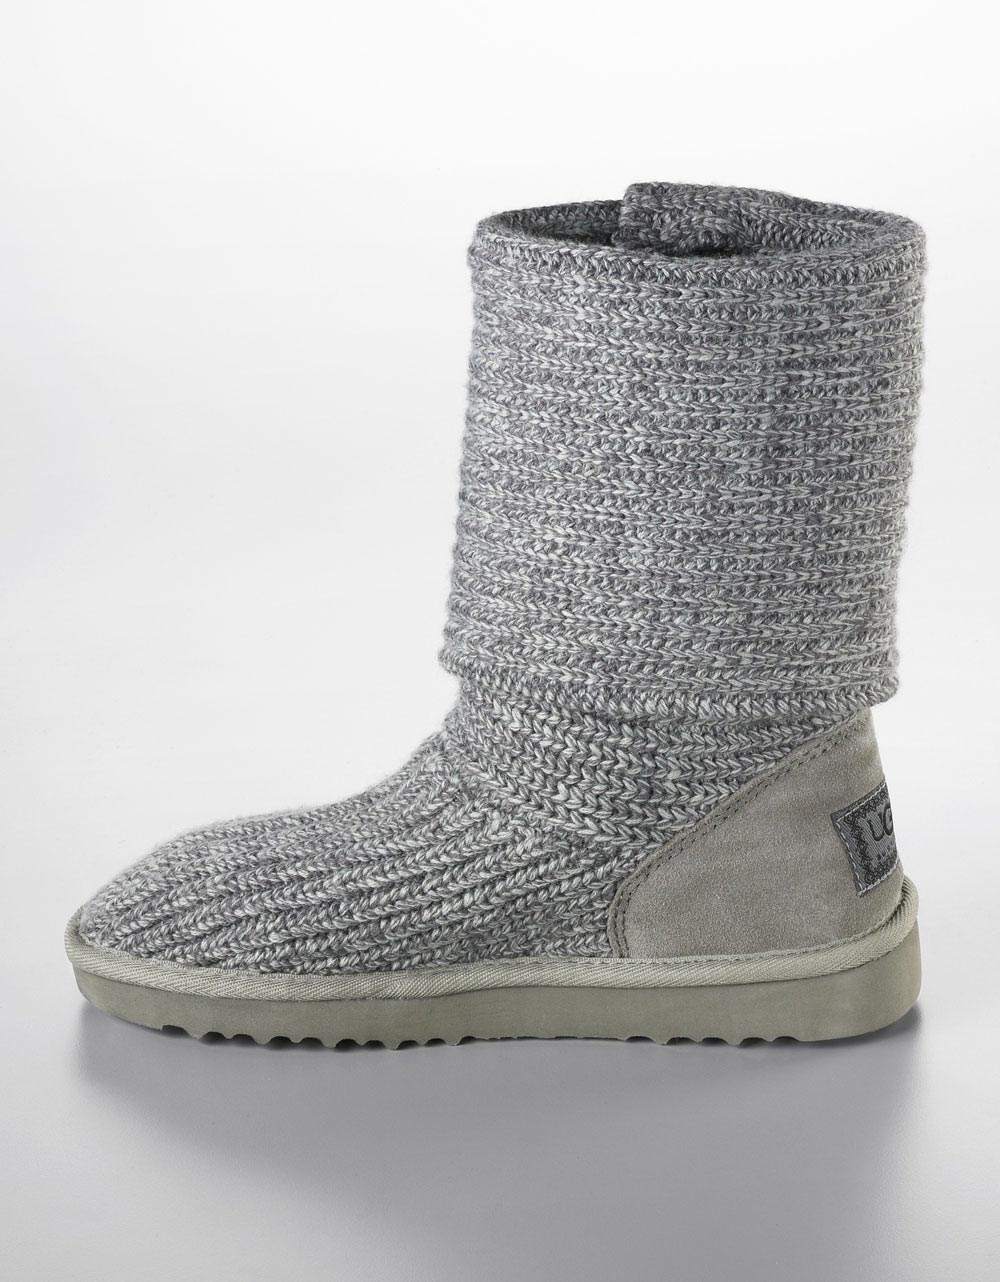 Ugg Wool Classic Cardy Boots In Gray Lyst